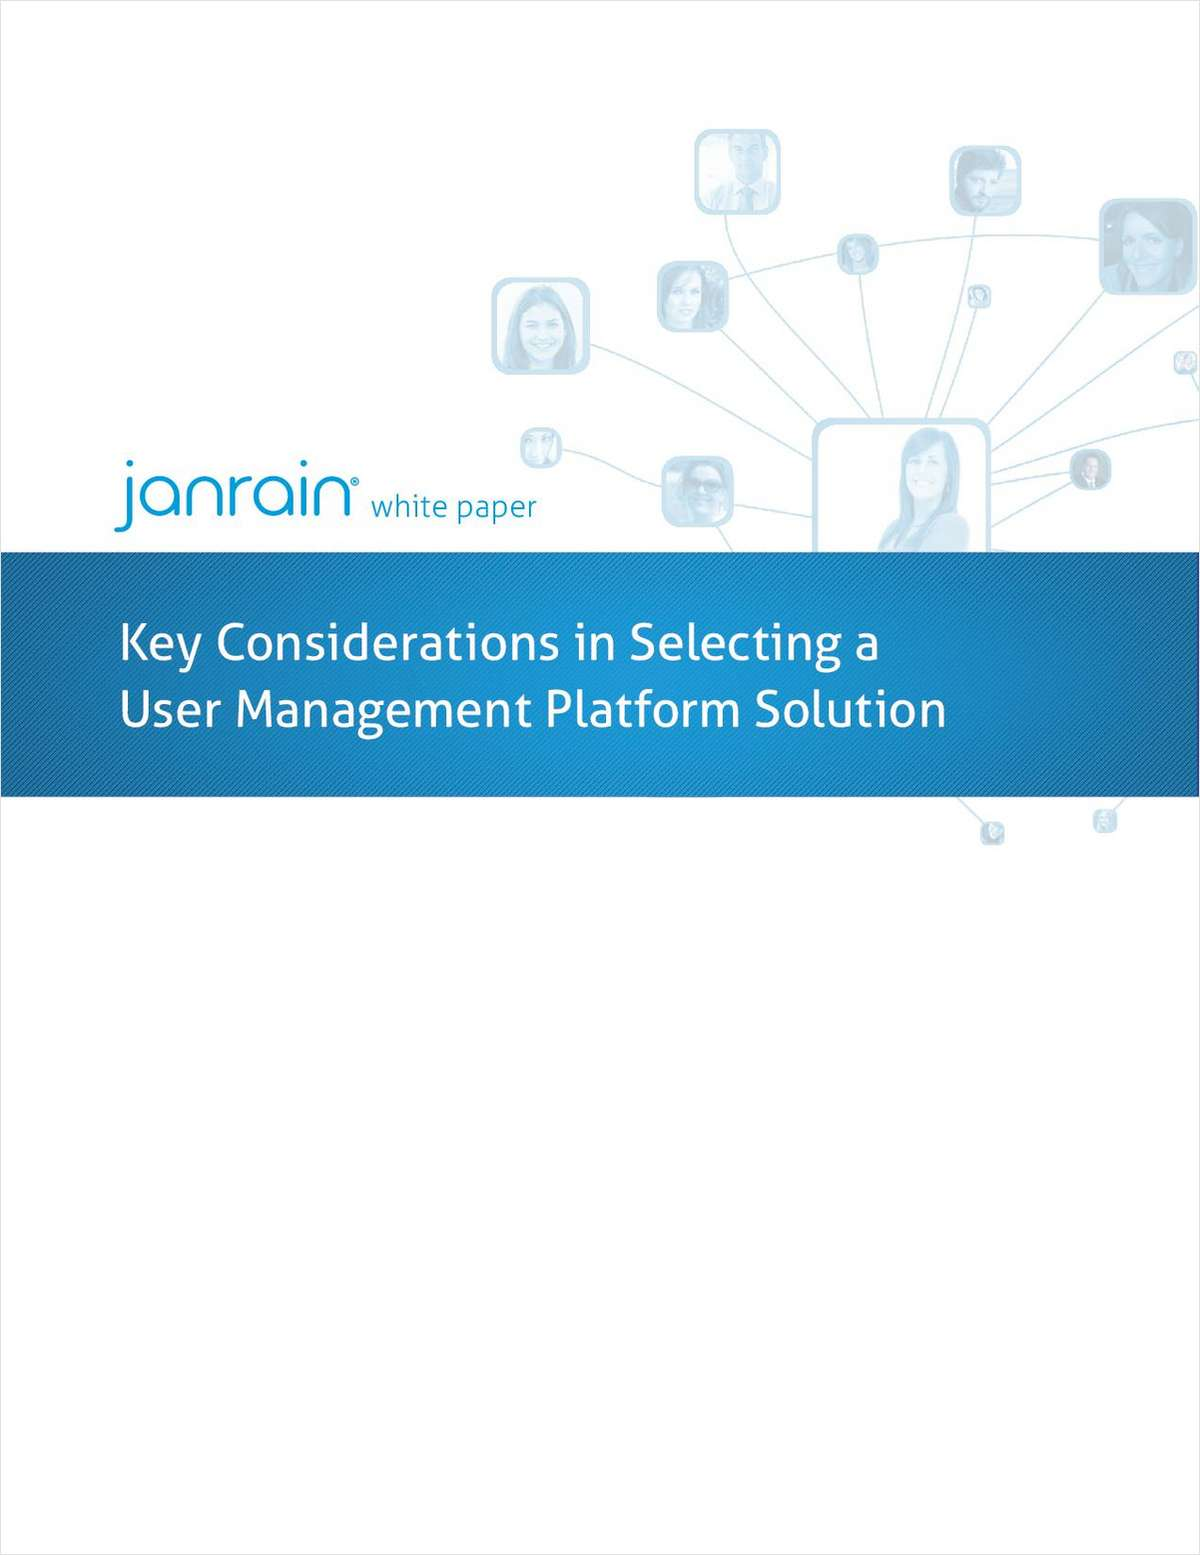 Key Considerations When Selecting a User Management Platform Solution